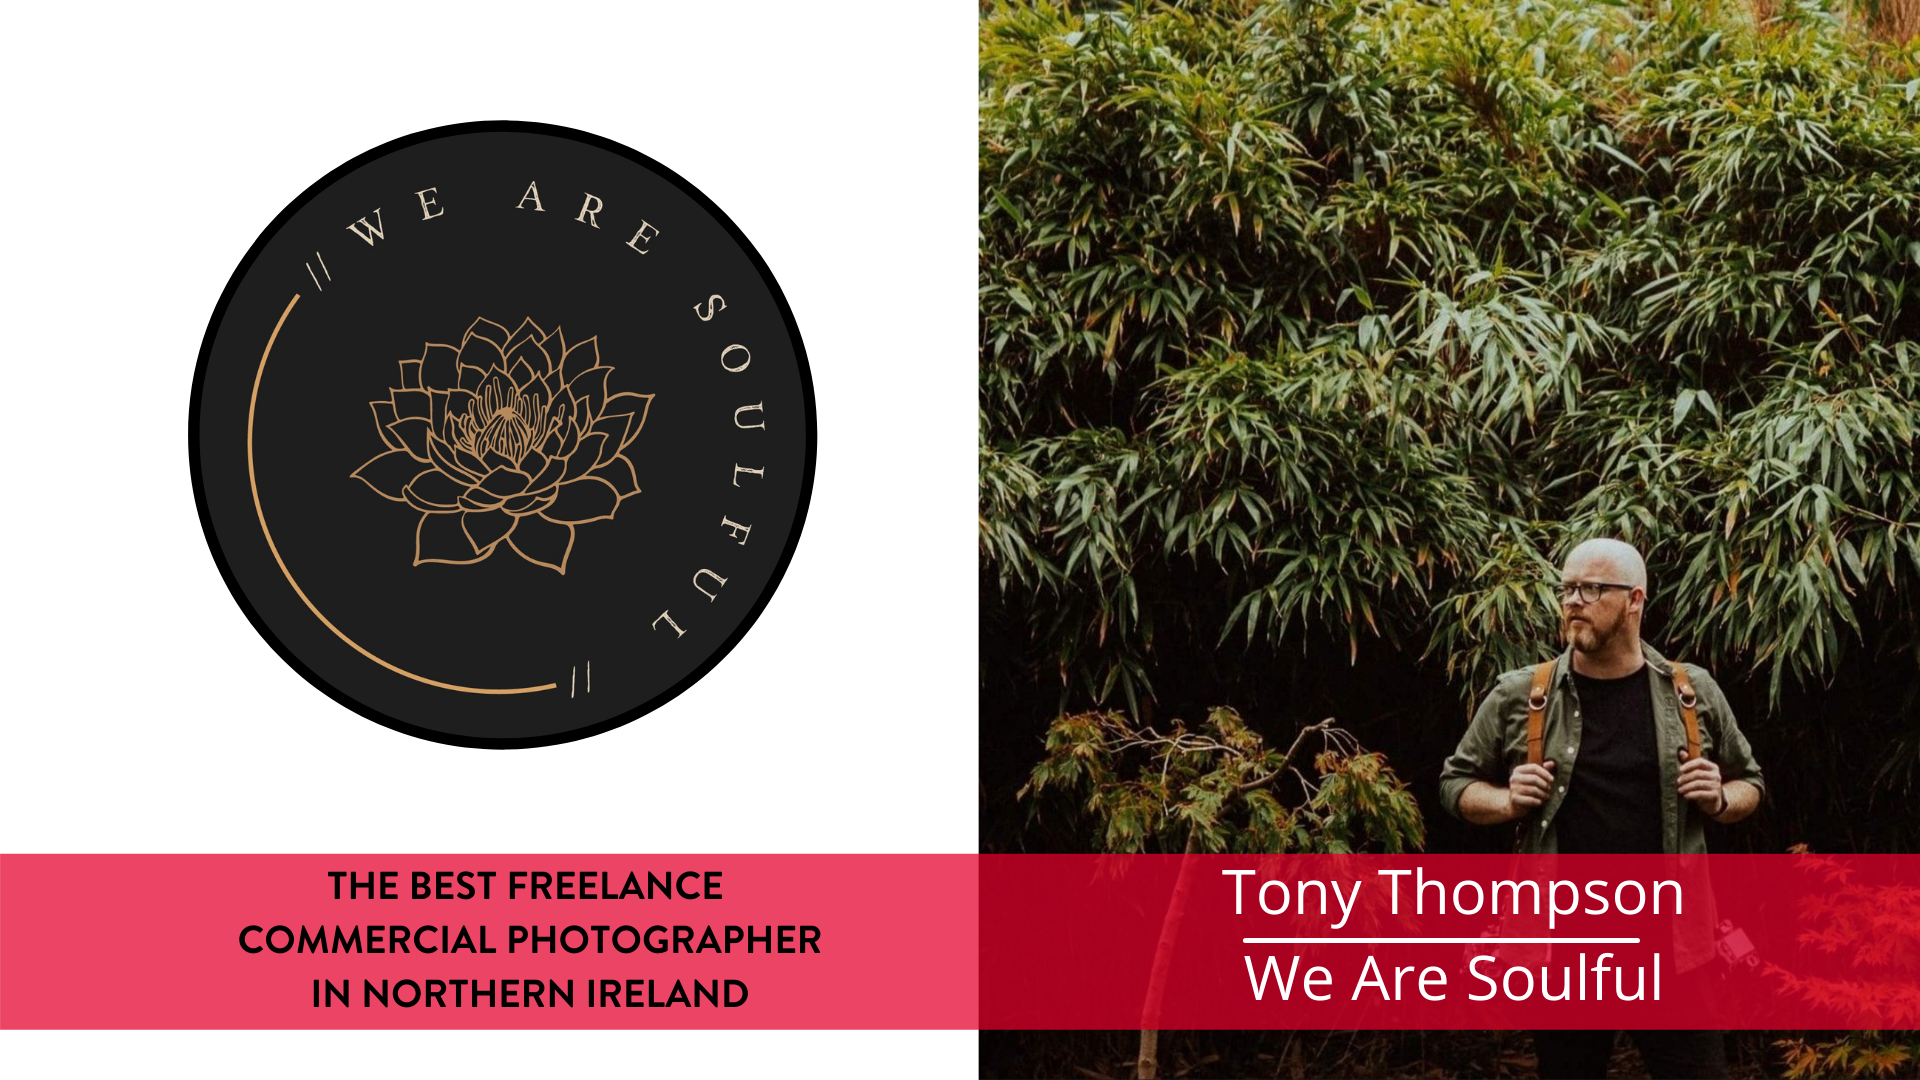 Best freelance commercial and business photographer in Northern Ireland - Tony Thompson, We Are Soulful